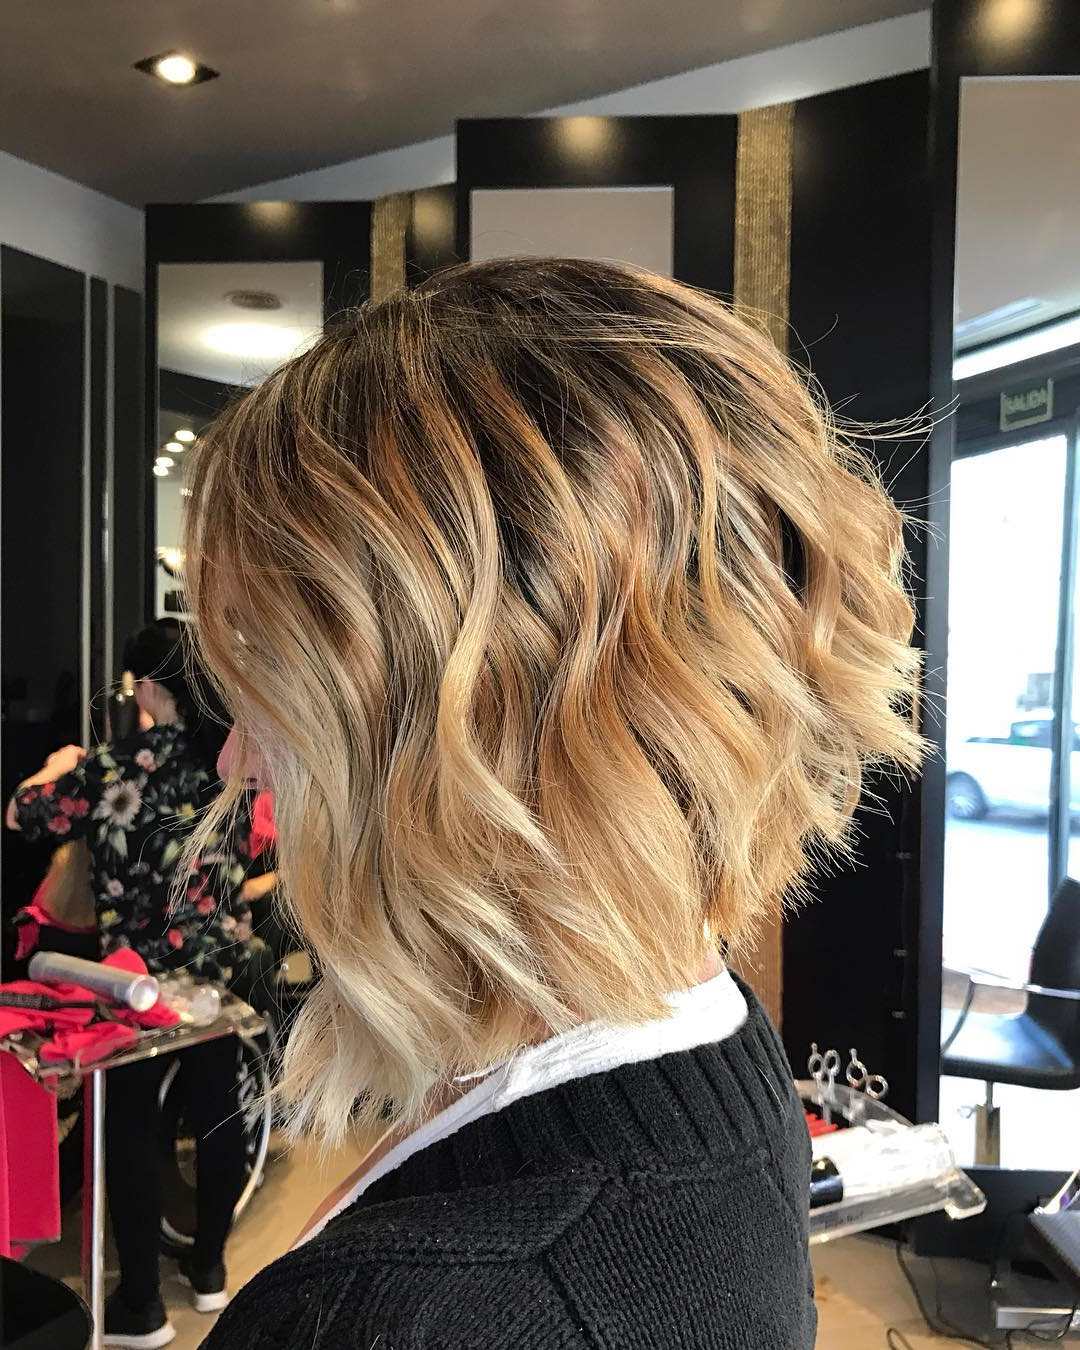 10 Layered Bob Hairstyles – Look Fab In New Blonde Shades! – Popular With Regard To White Blonde Curly Layered Bob Hairstyles (View 3 of 25)